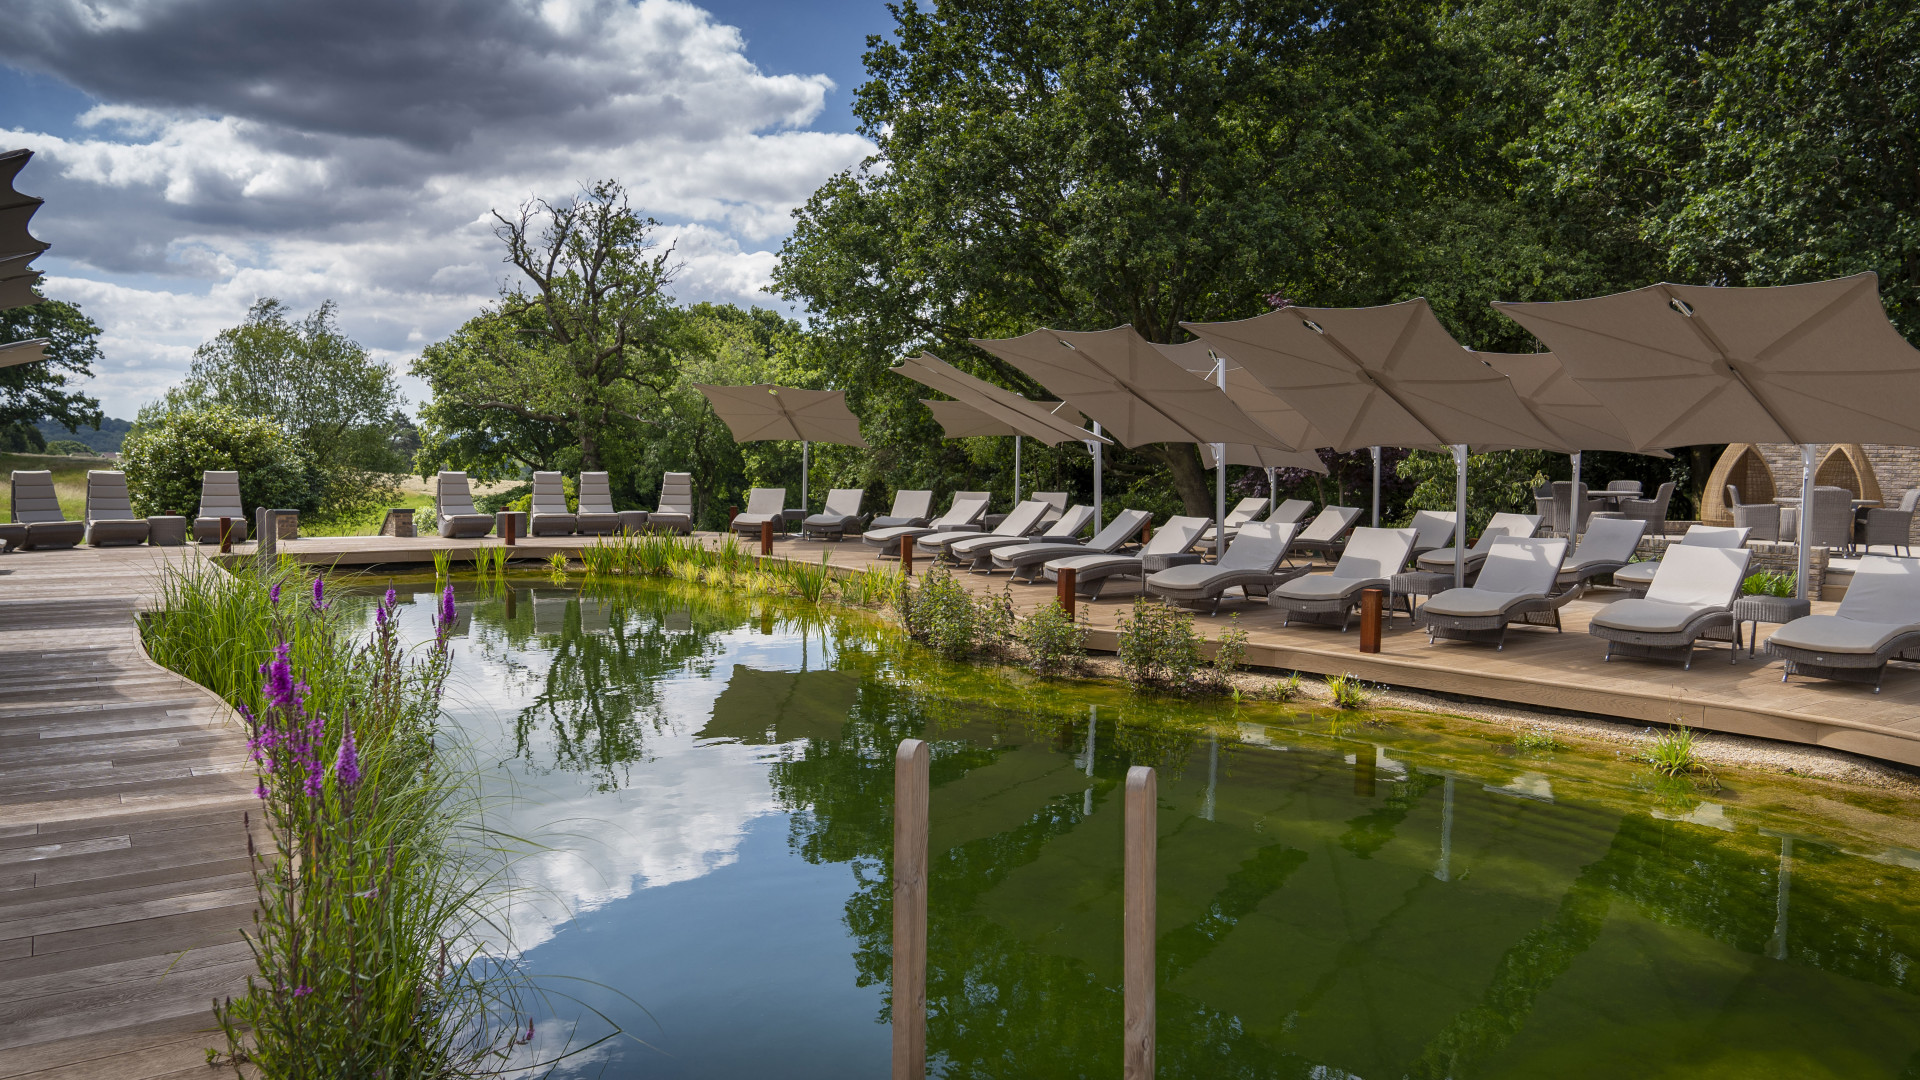 World's Most Awesome Swimming Pools: The Spa at South Lodge Sussex